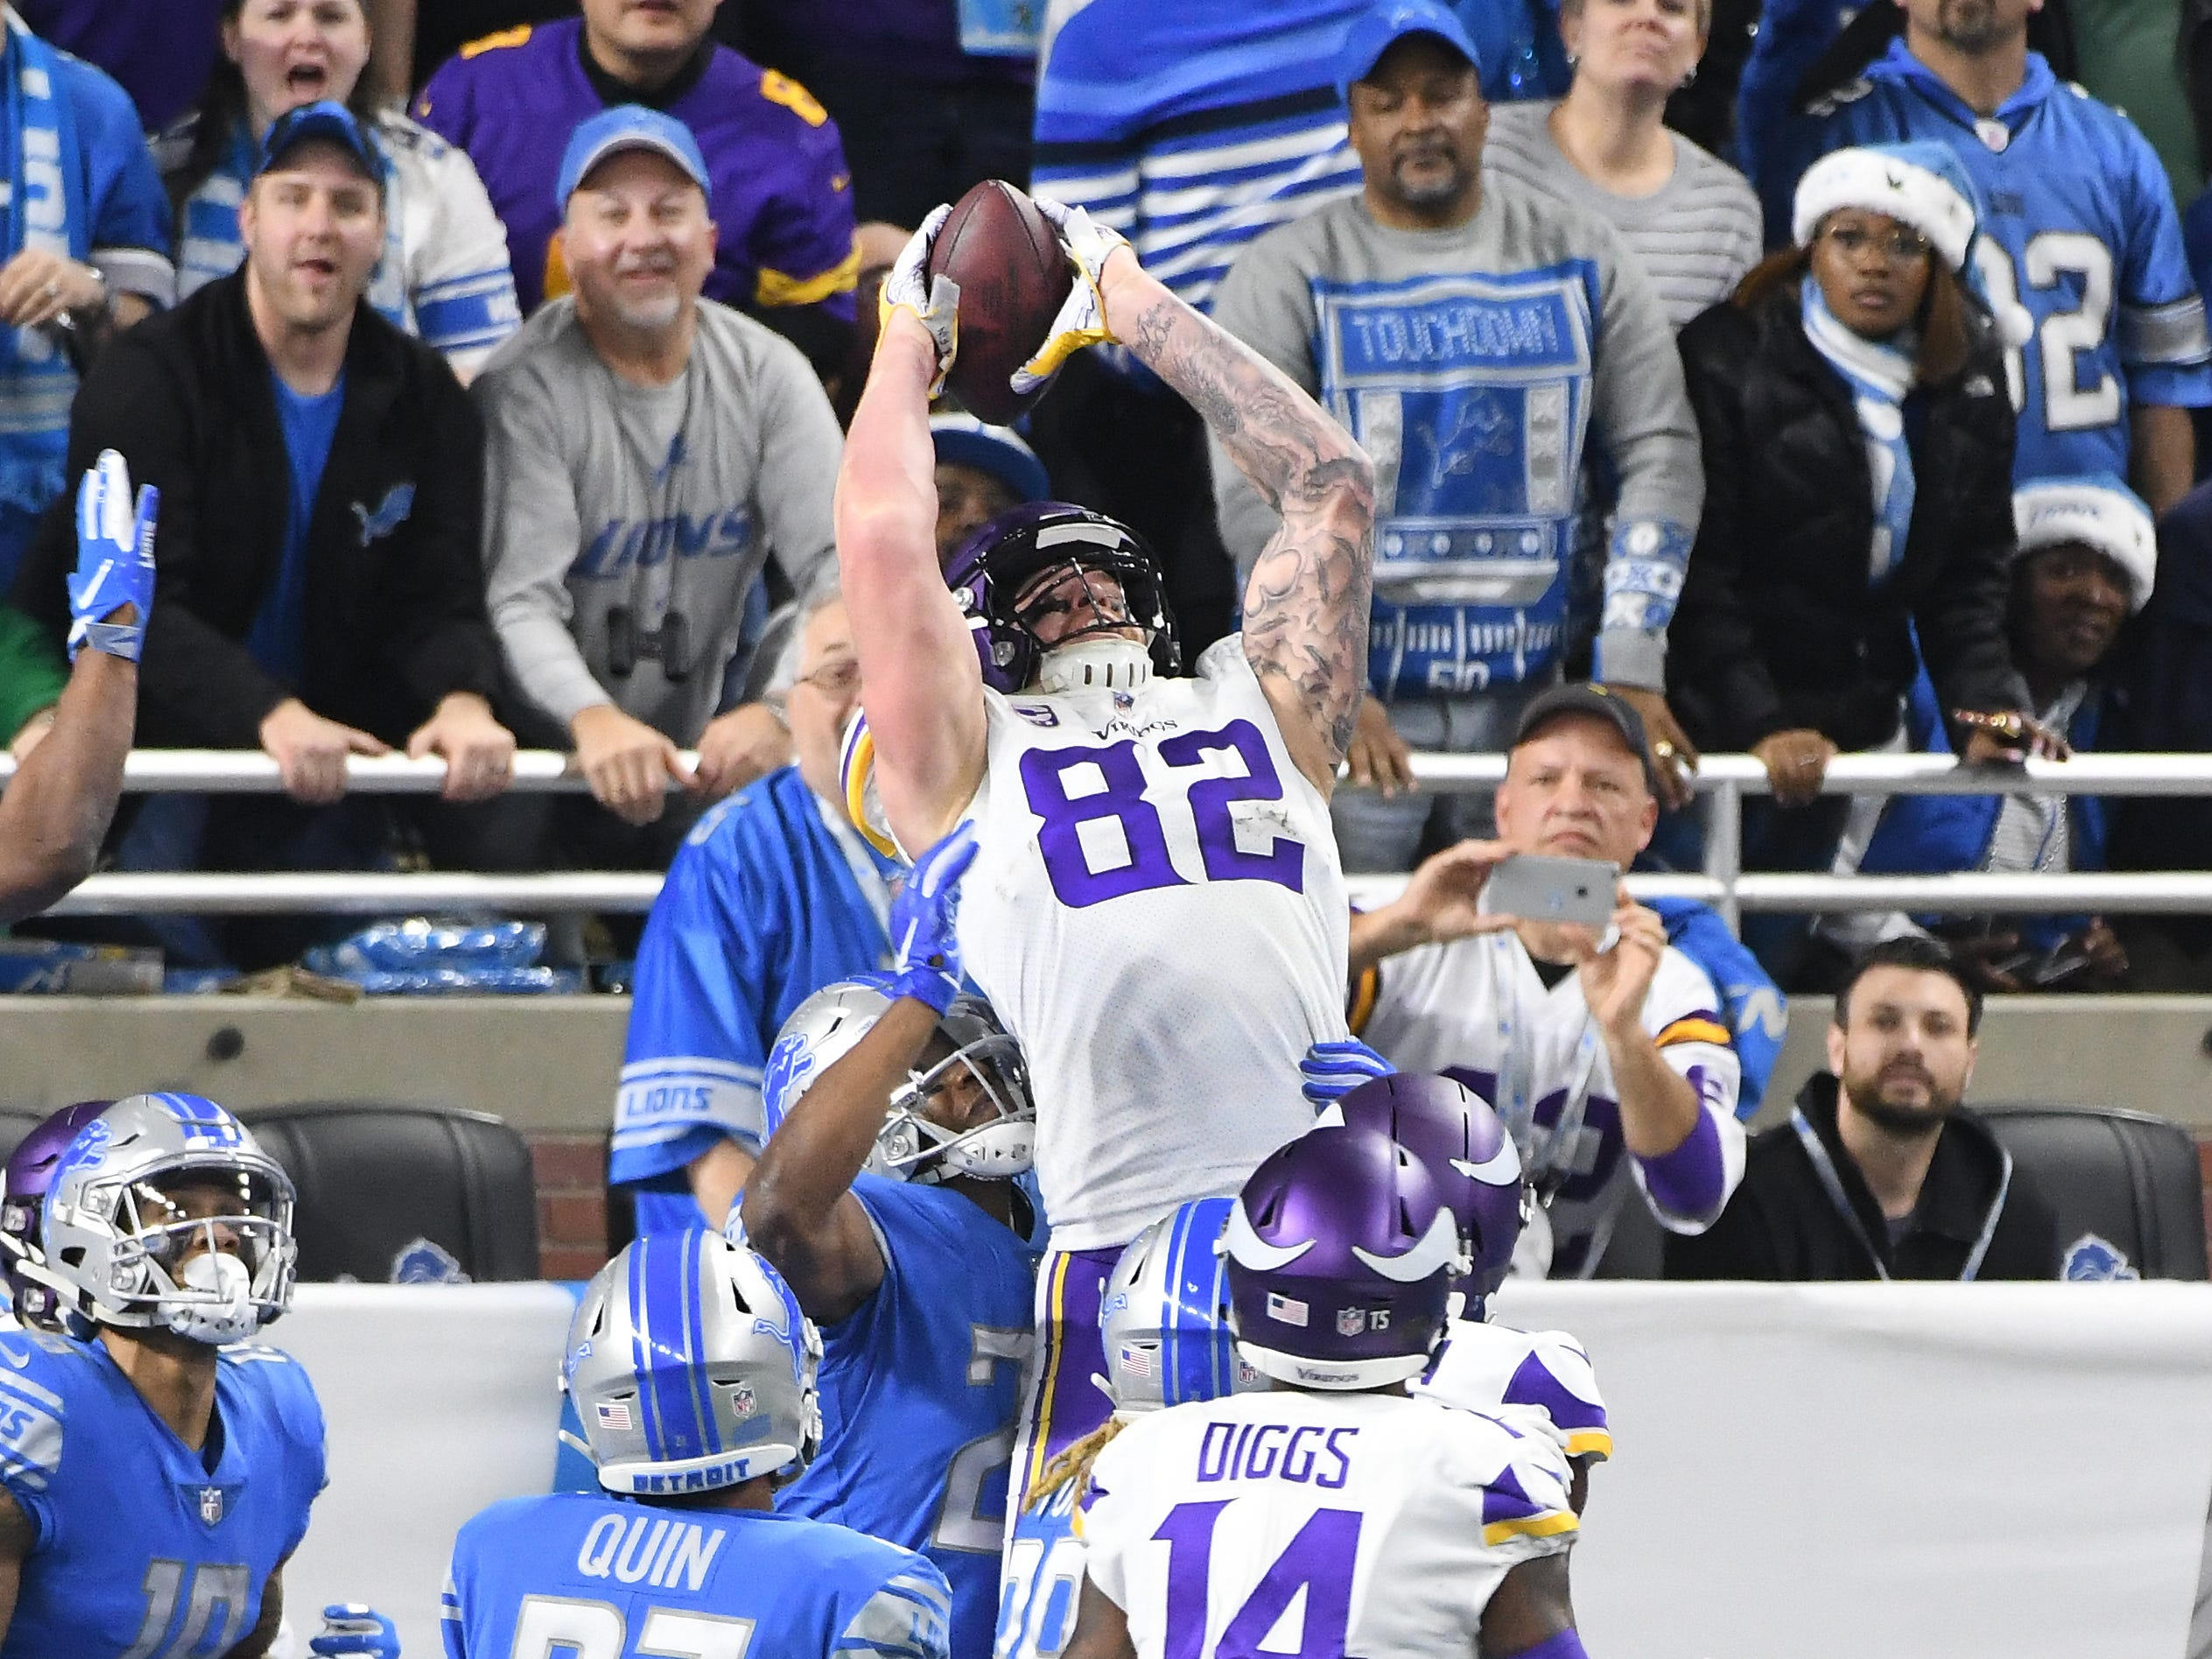 Viking's Kyle Rudolph pulls off 'Hail Mary' catch in the end zone as the clock runs out in the first half with Vikings leading 14-9.   NFL Detroit Lions vs. Minnesota Vikings at Ford Field in Detroit, Michigan on Dec. 23, 2018.